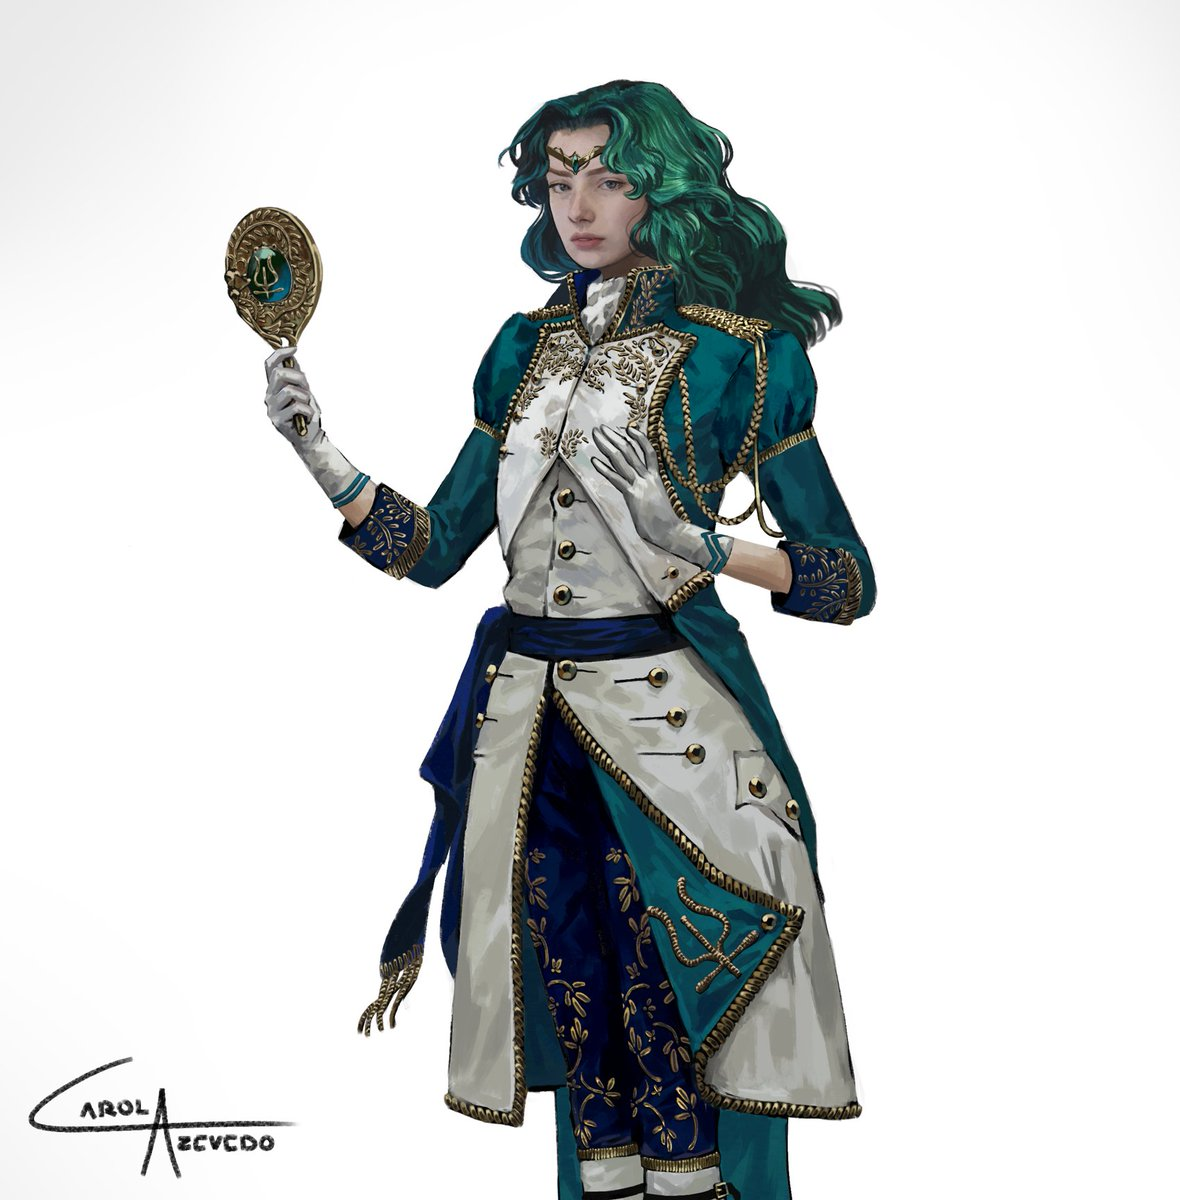 Hi guys! Hope you all remember the sailors I was working on. They&#39;re finally on artstation!  https://www. artstation.com/artwork/ZLEPx  &nbsp;   You can see them fully and in better res on the link  #artistsontwitter #SailorMoon #illustration @ArtStationHQ<br>http://pic.twitter.com/kdhzZWAmFe